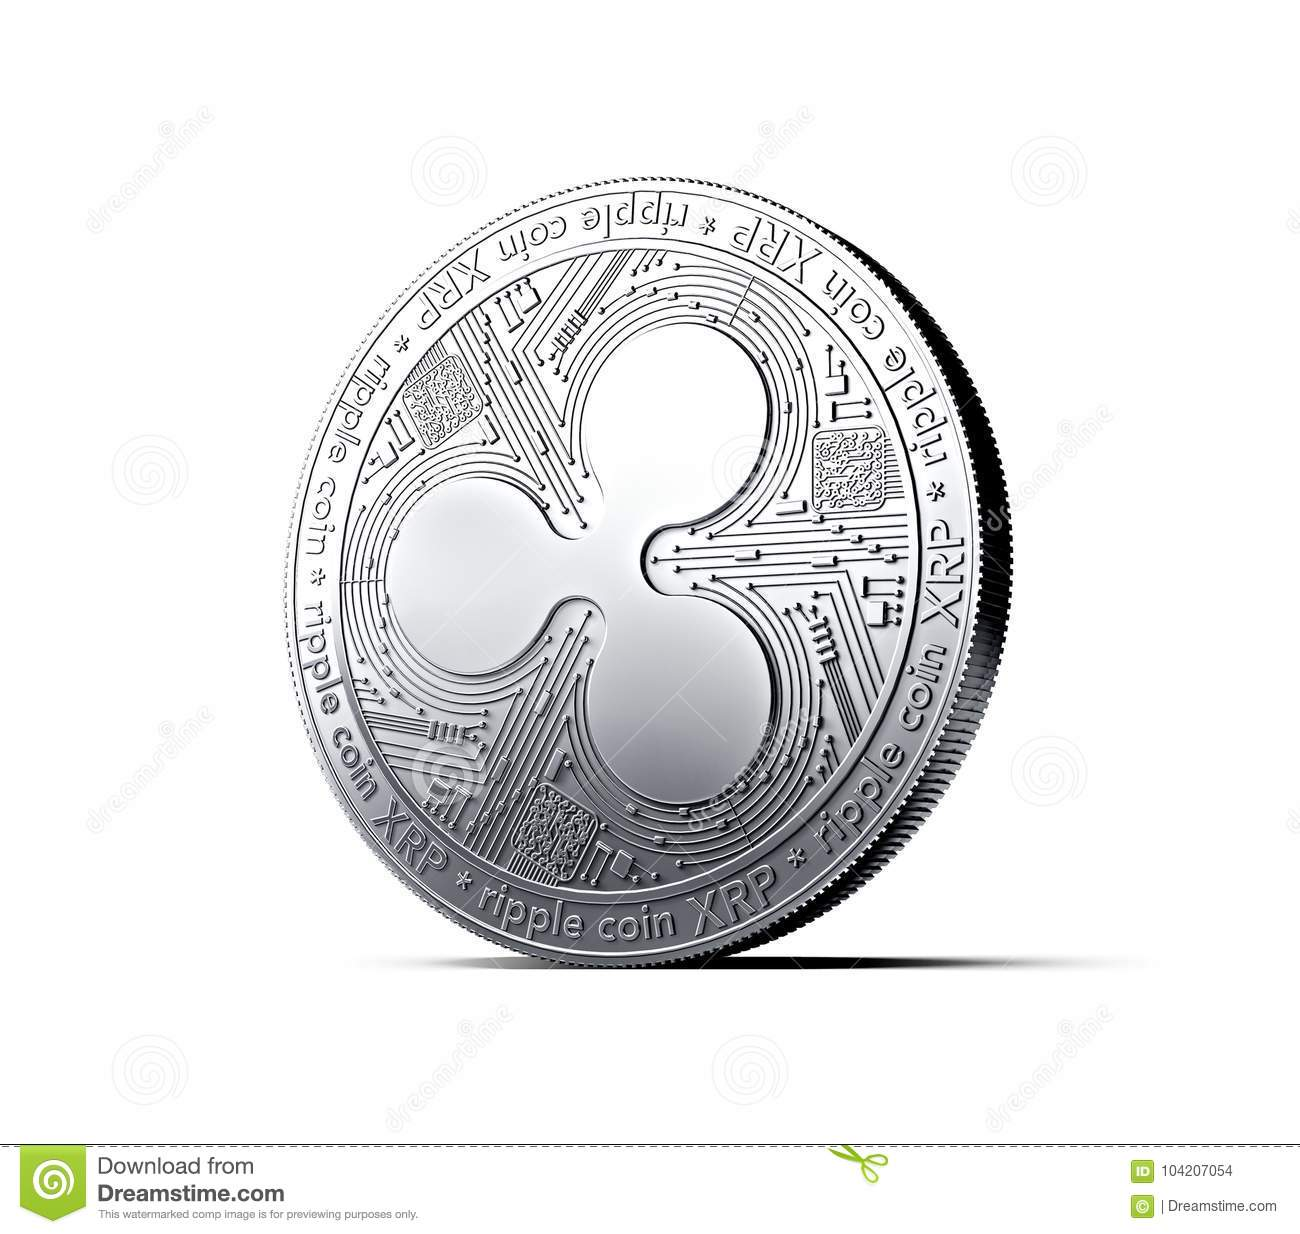 a8d69a6dff008 Silver Ripple XRP coin isolated white background. 3D rendering. New virtual  money vector illustration